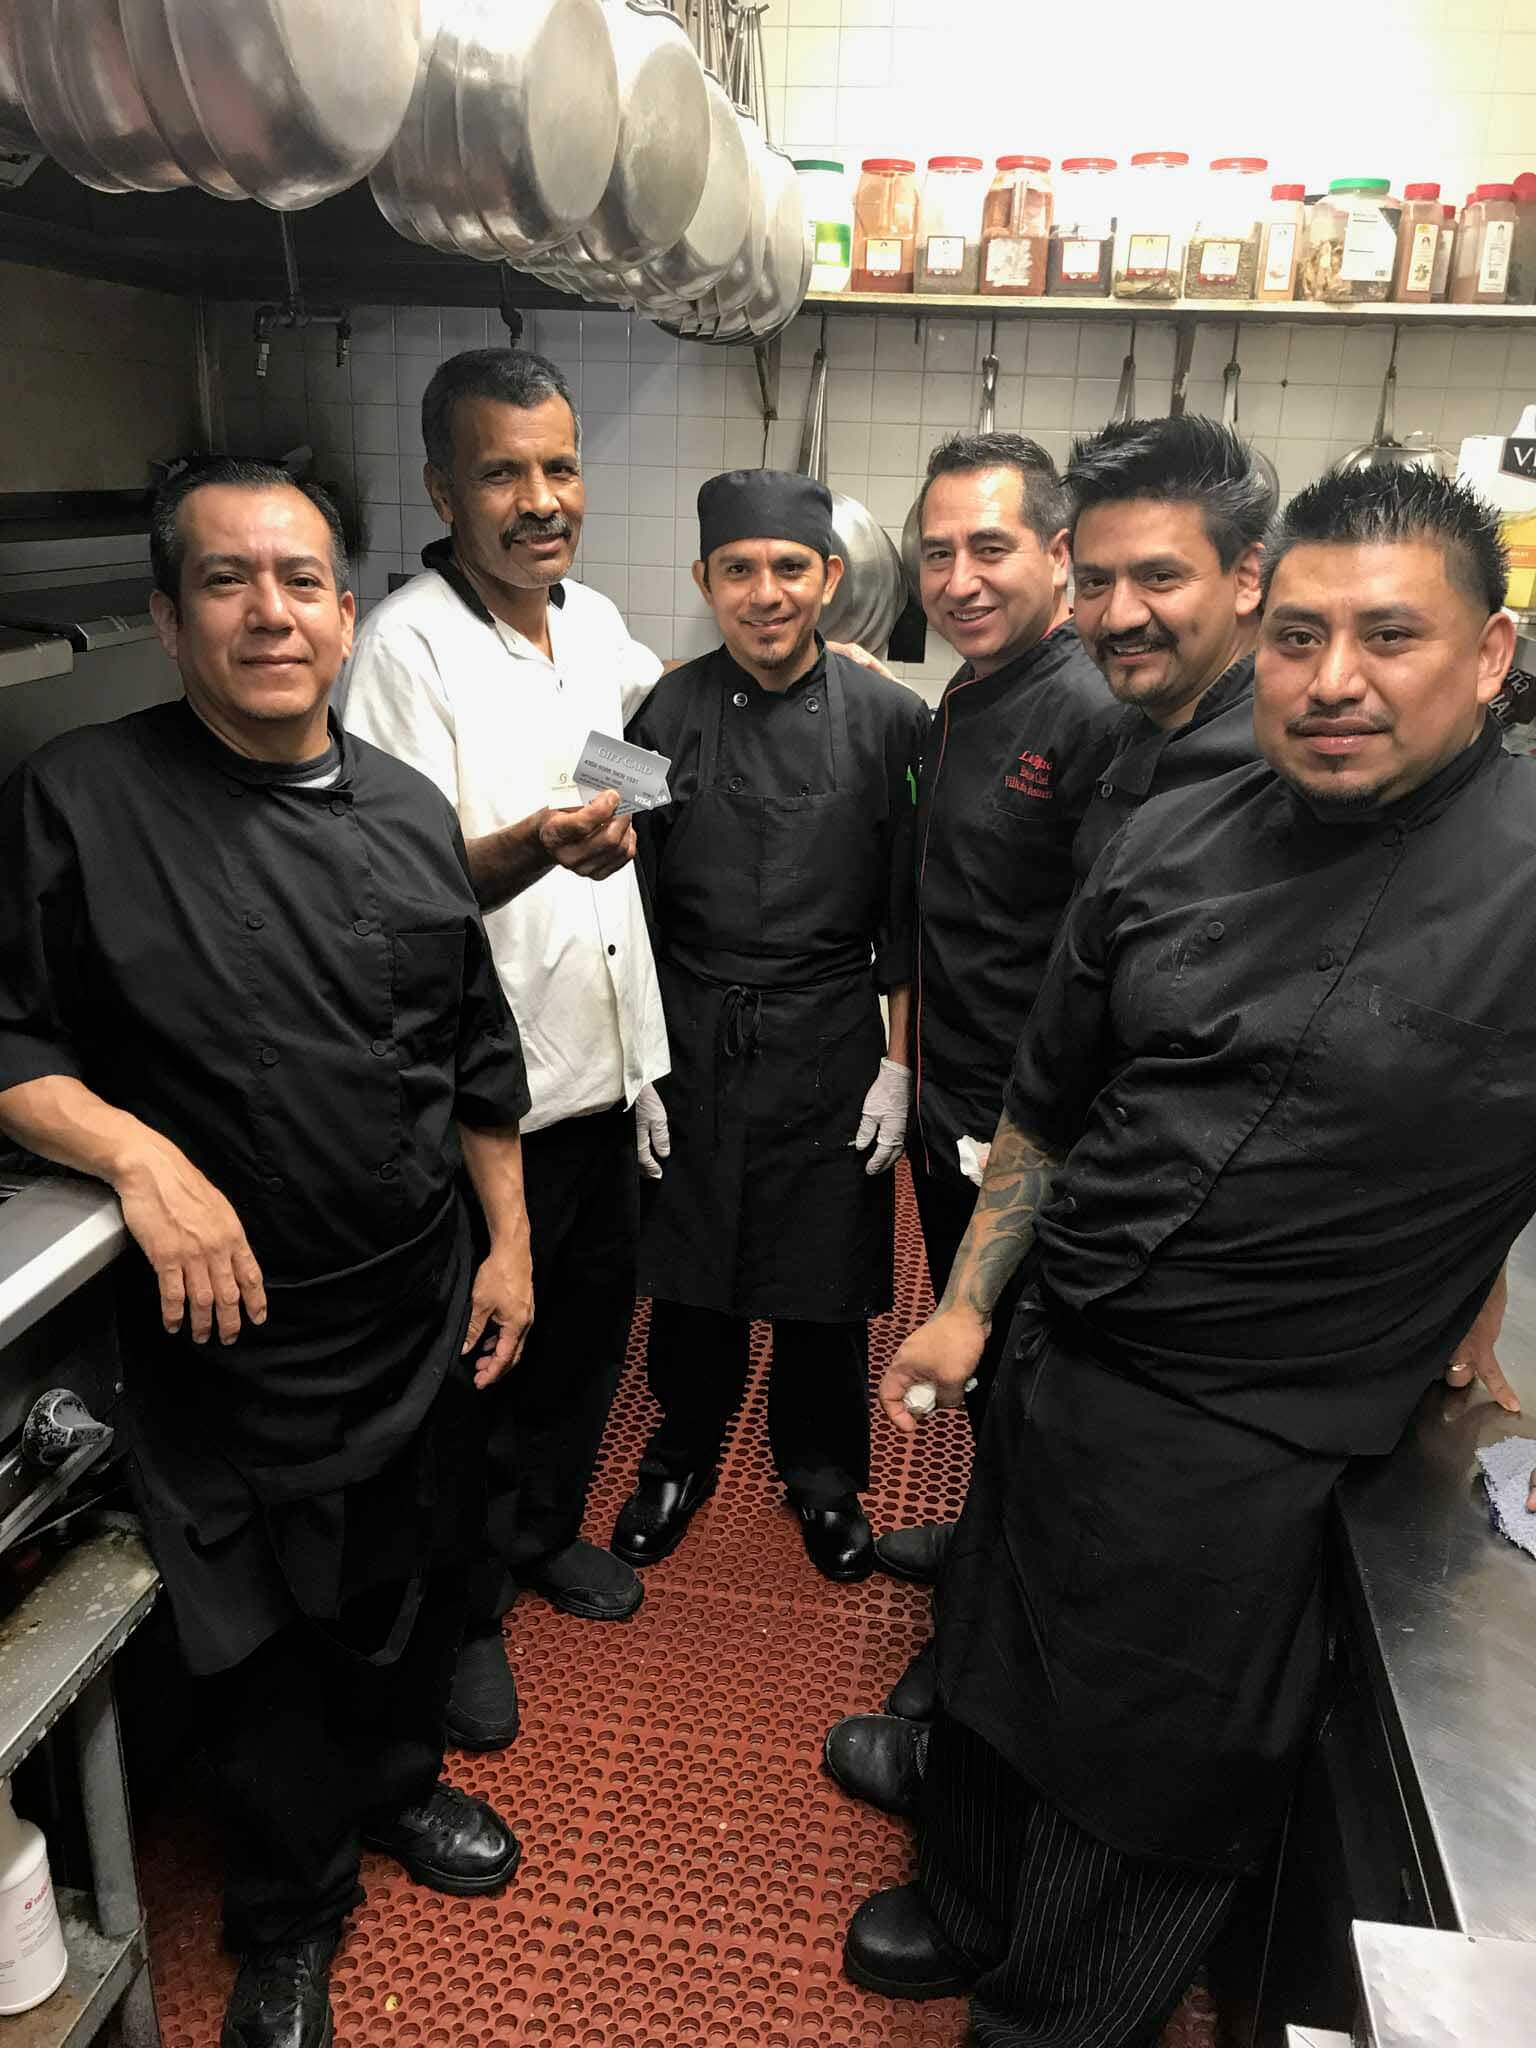 Simon Morales and the kitchen crew at Villa Roma.